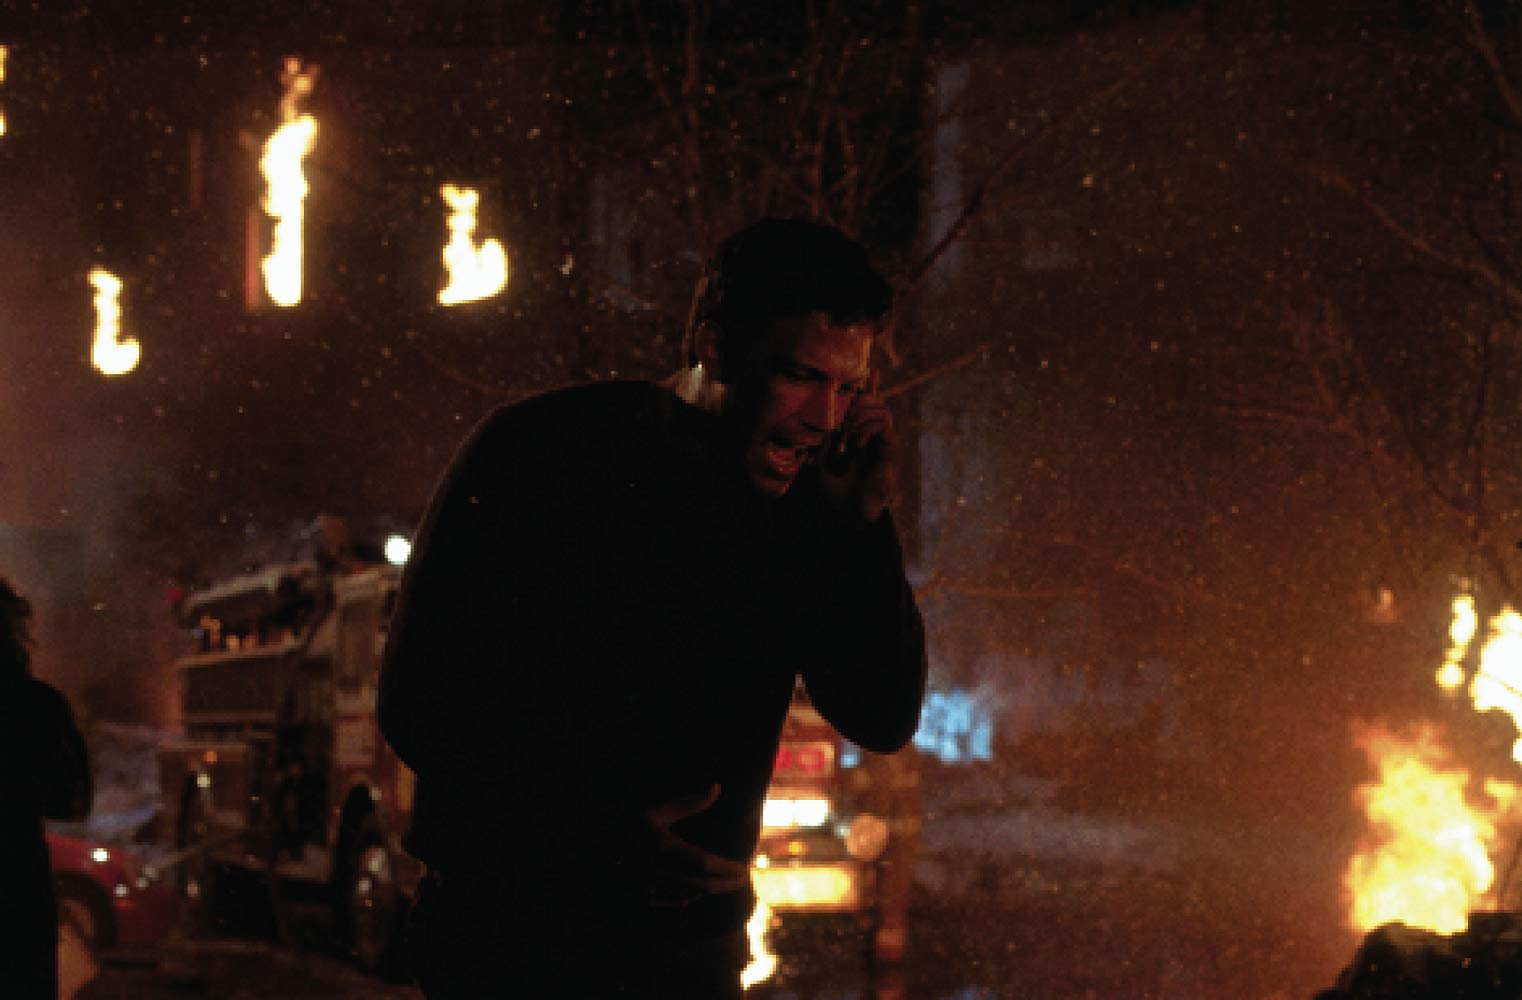 Jack Ryan (Ben Affleck) runs through the aftermath of a nuclear strike in The Sum of All Fears (2002)